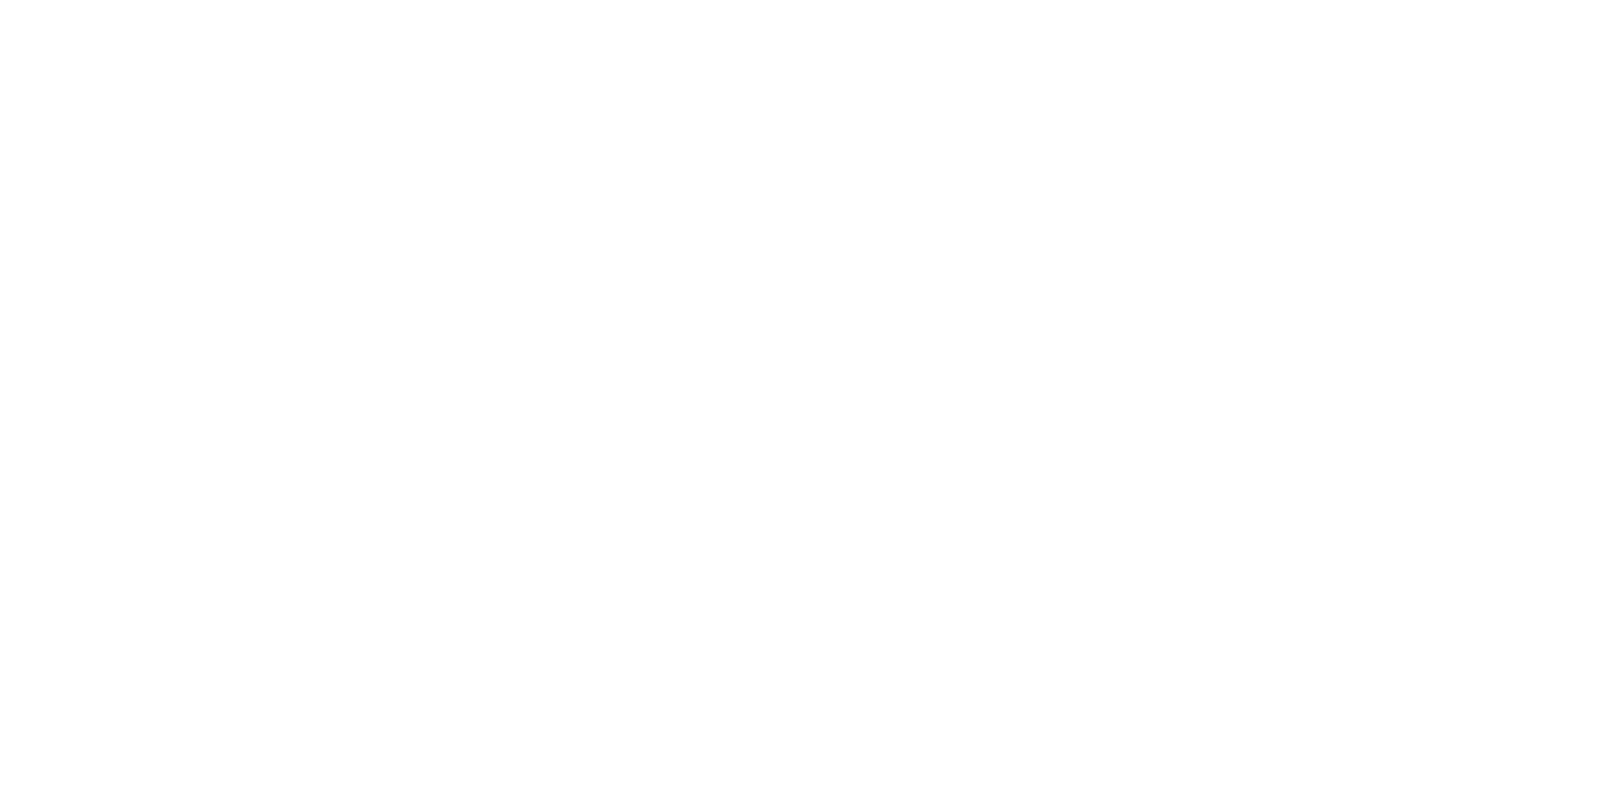 1-day extensions: 50% off mats with code MATS50